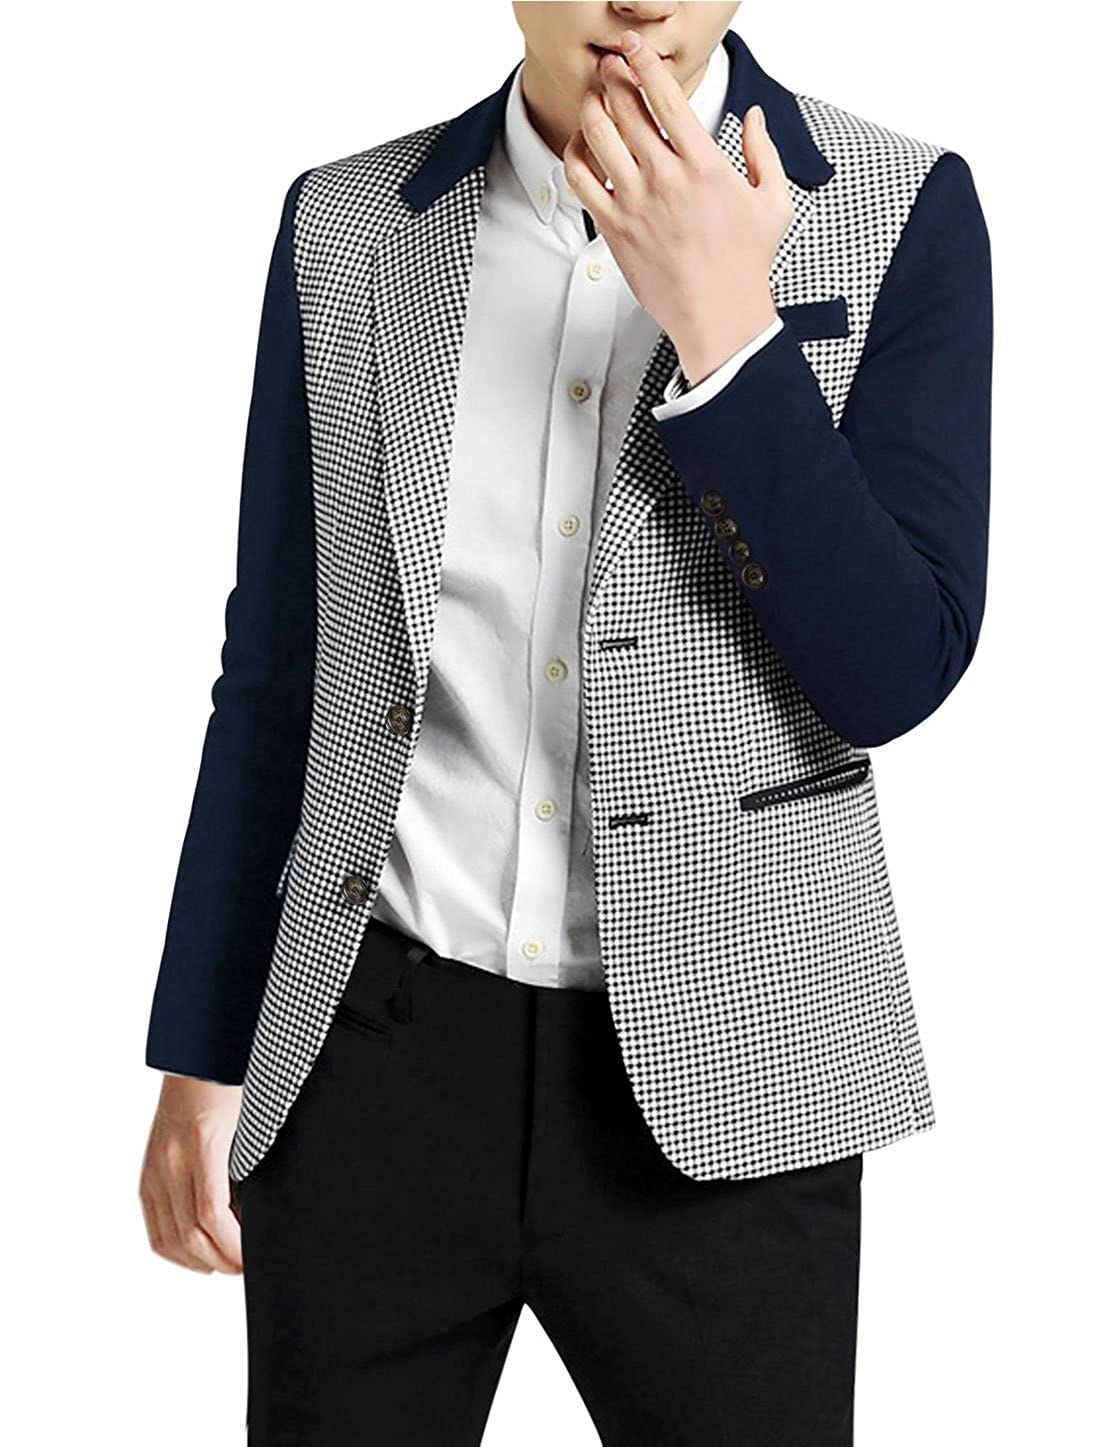 uxcell Men Houndstooth Long Sleeve Padded Shoulder Single Breasted Blazer g14082900ux0007